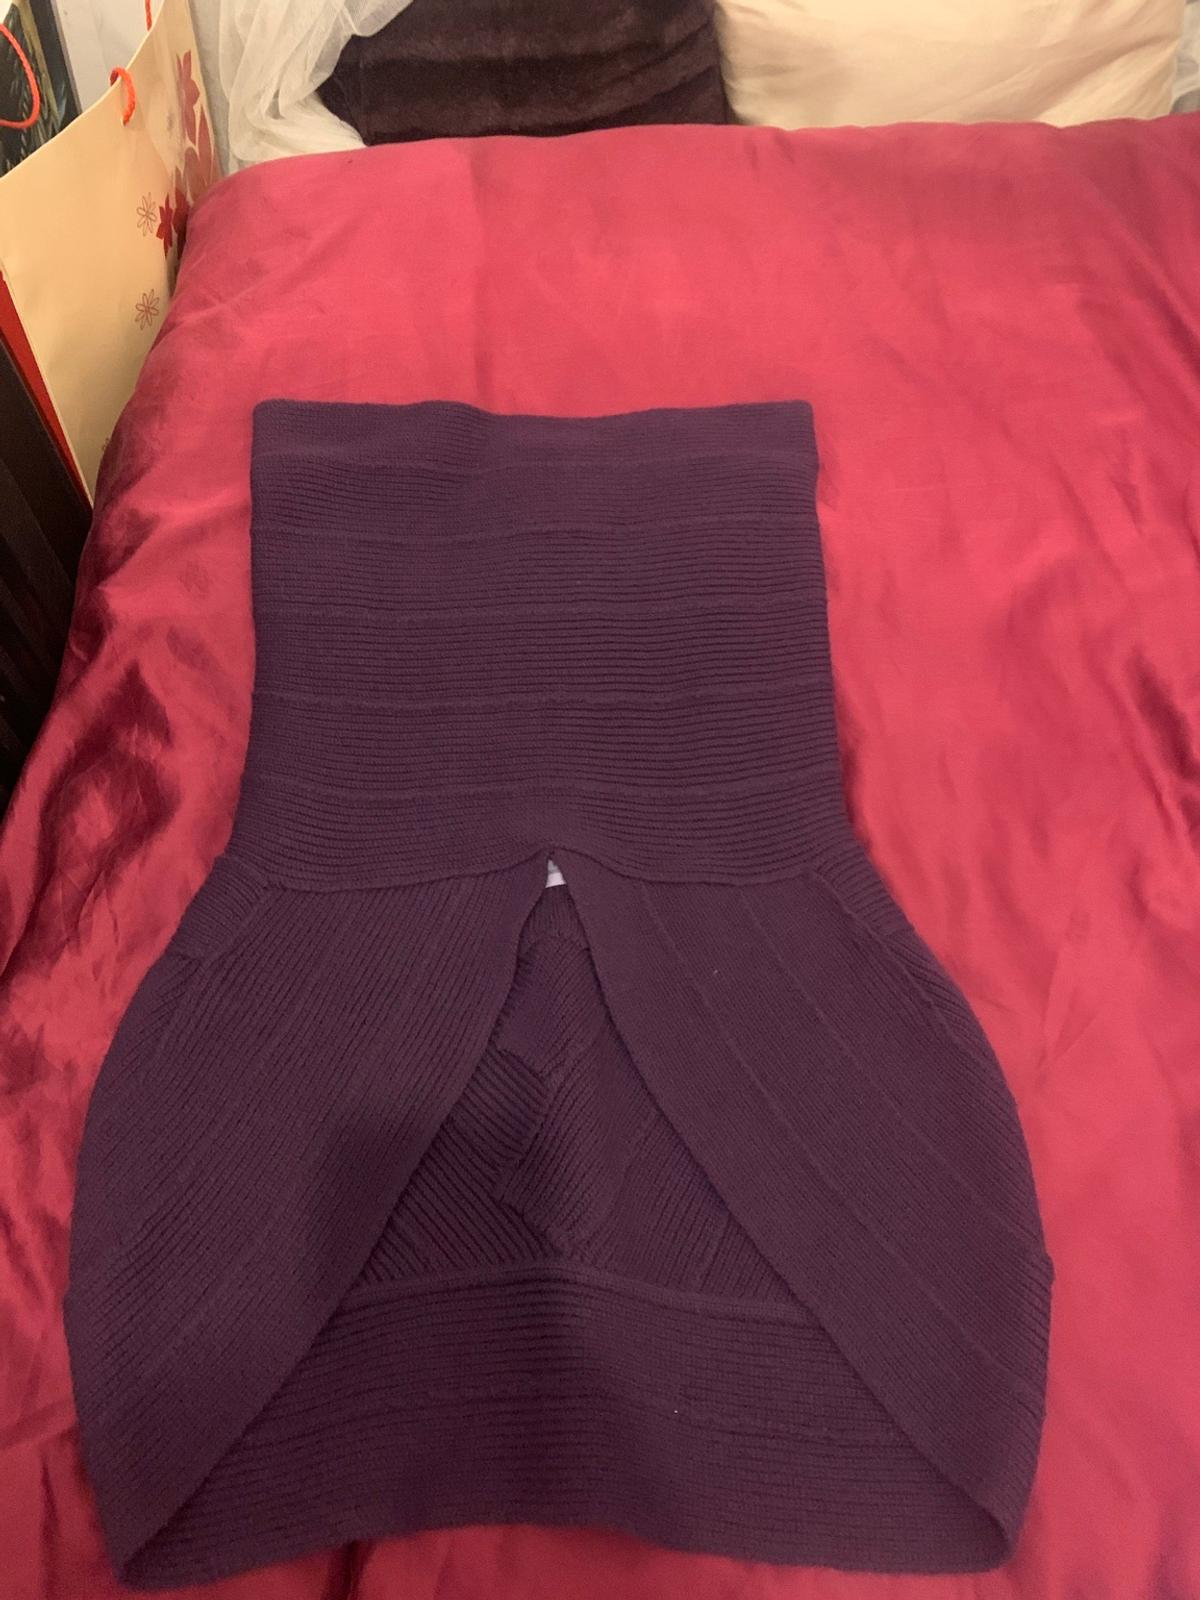 This is a top, longer in the back and w cut in the front. Fits size S- small M